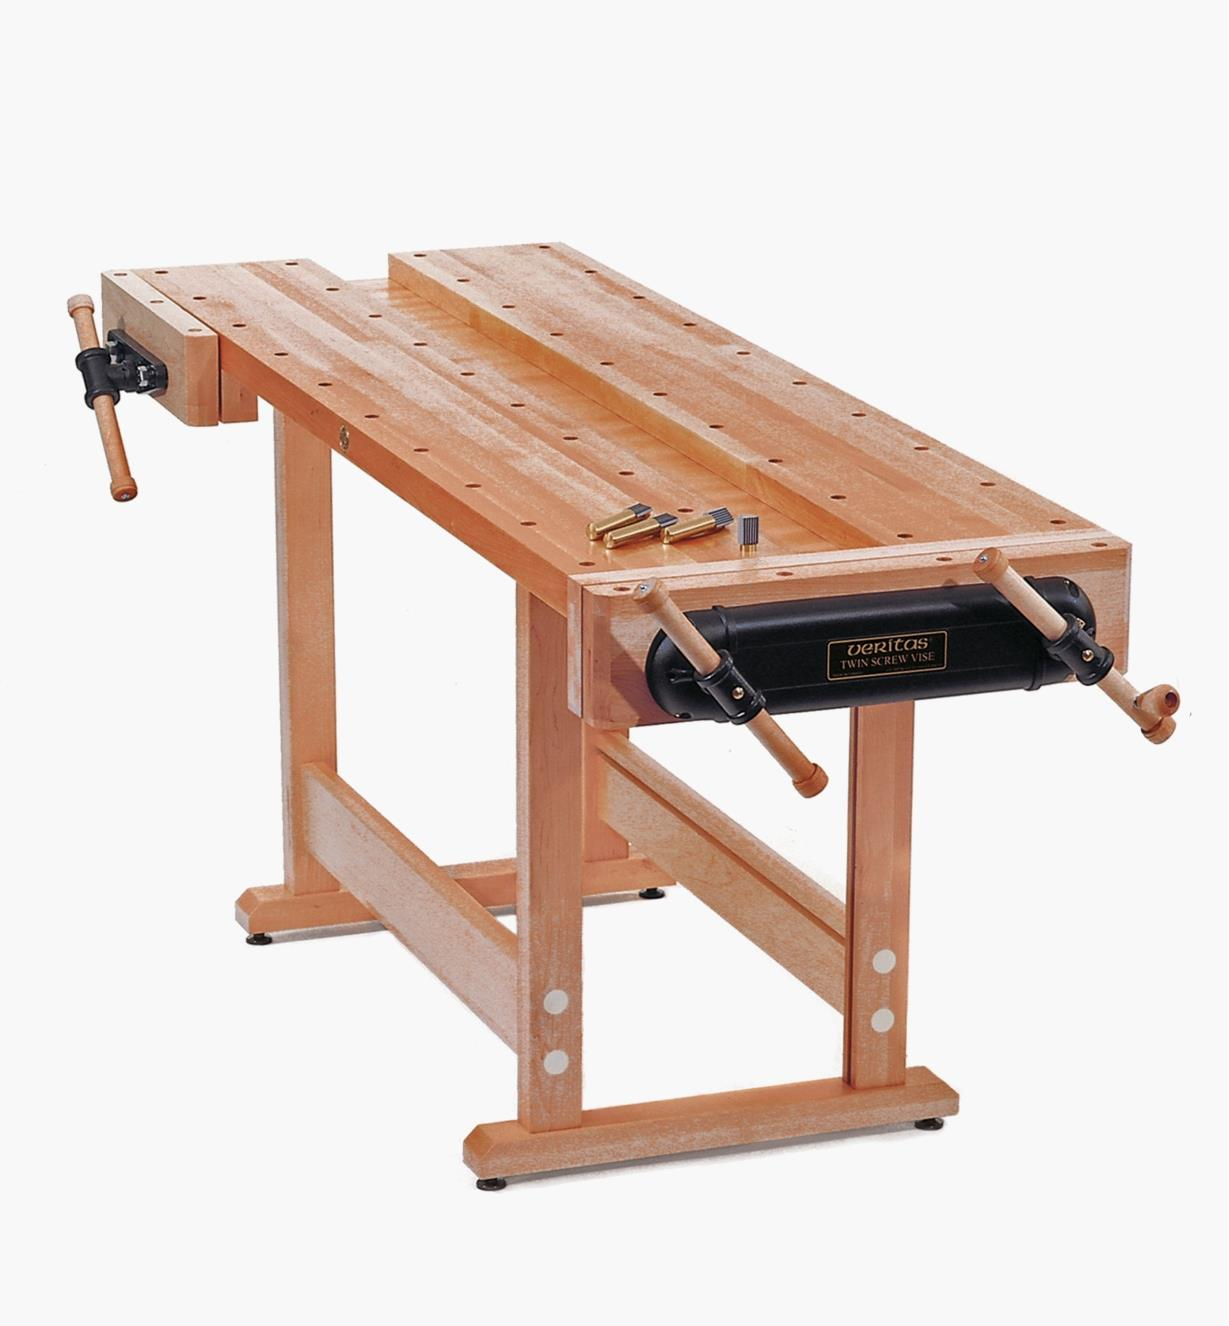 Veritas Workbenches